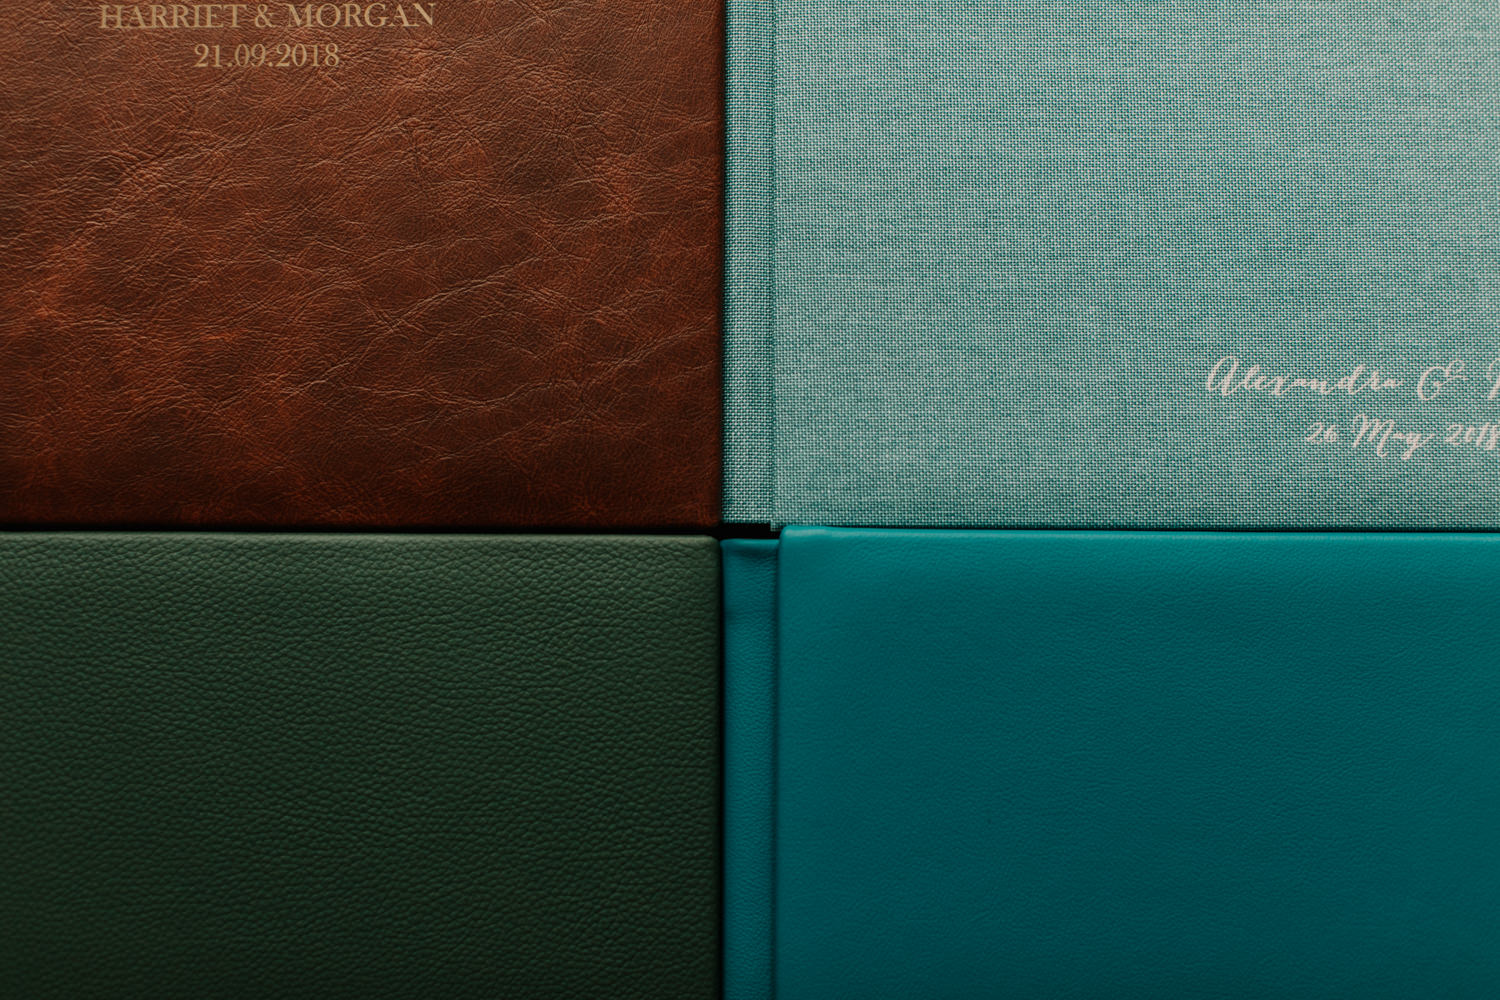 4 different types of wedding album samples